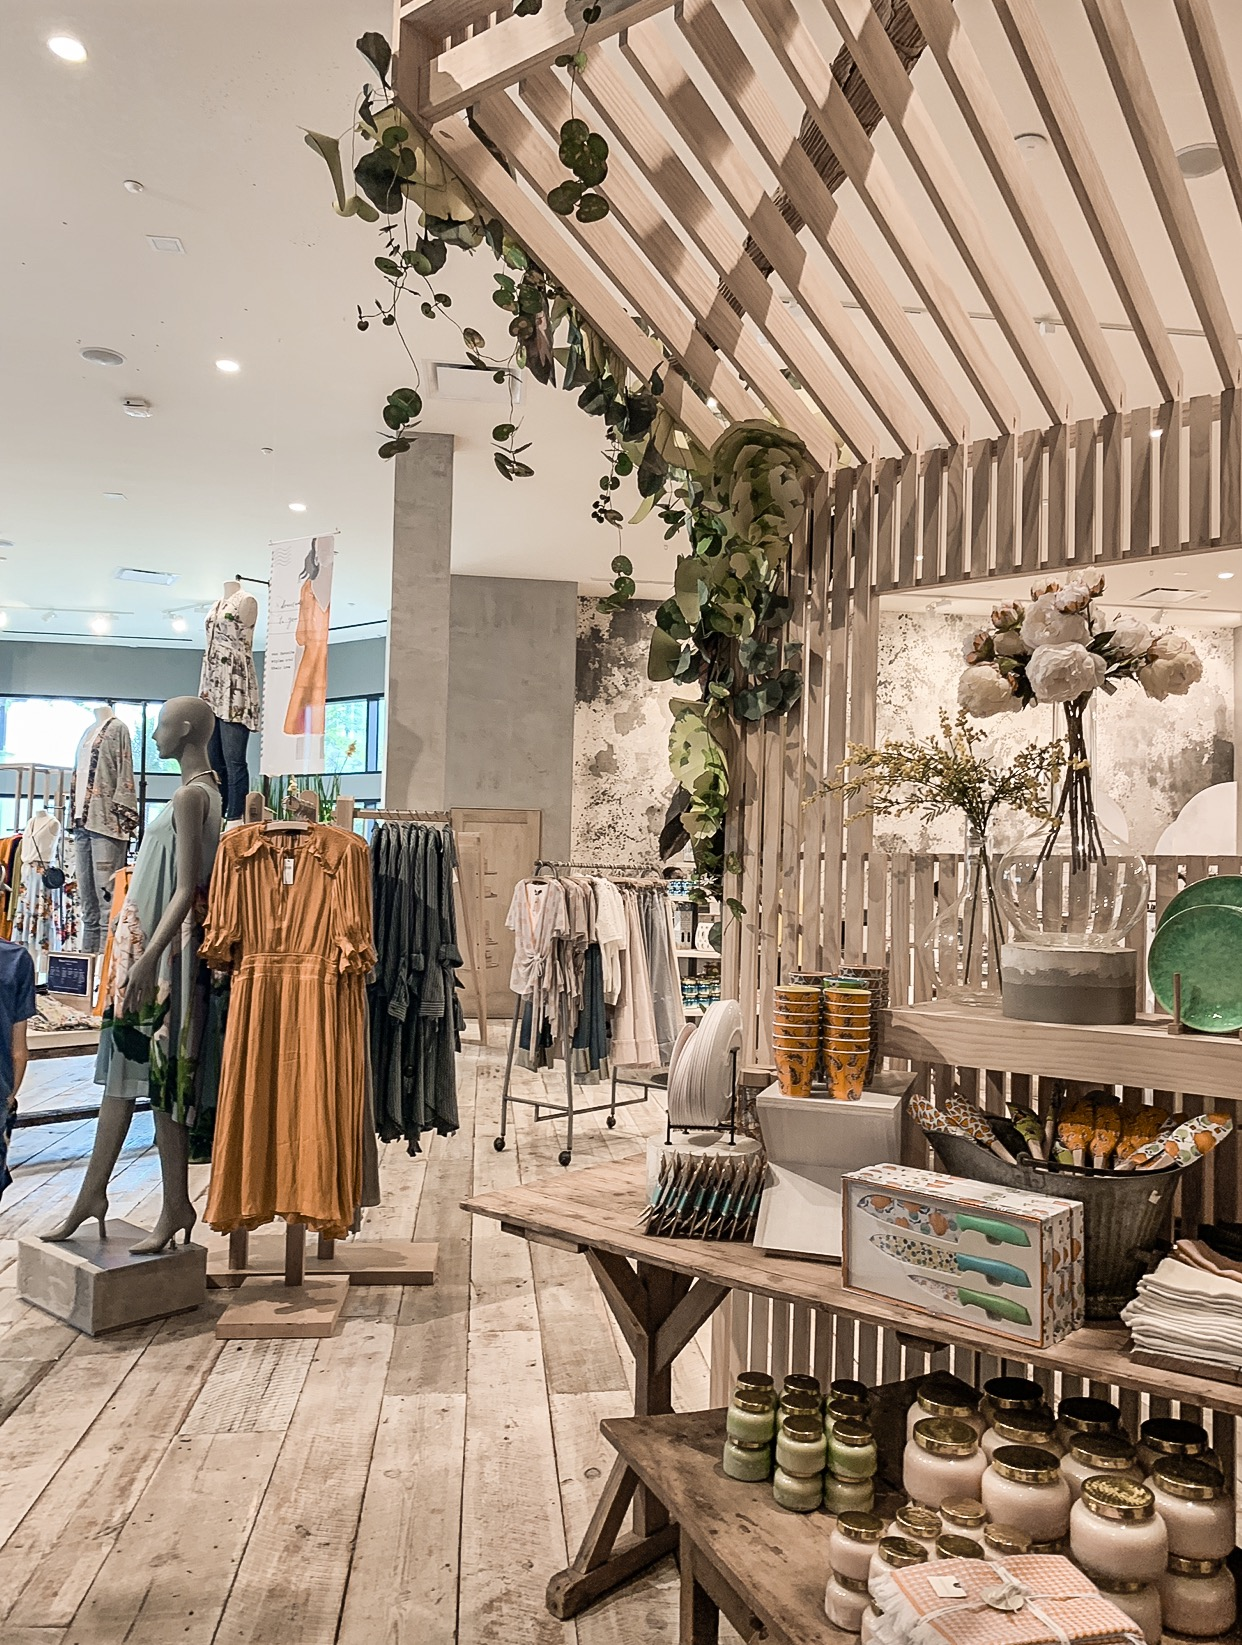 Interior of  Anthropologie , Orlando, Florida, USA taken in April 2019